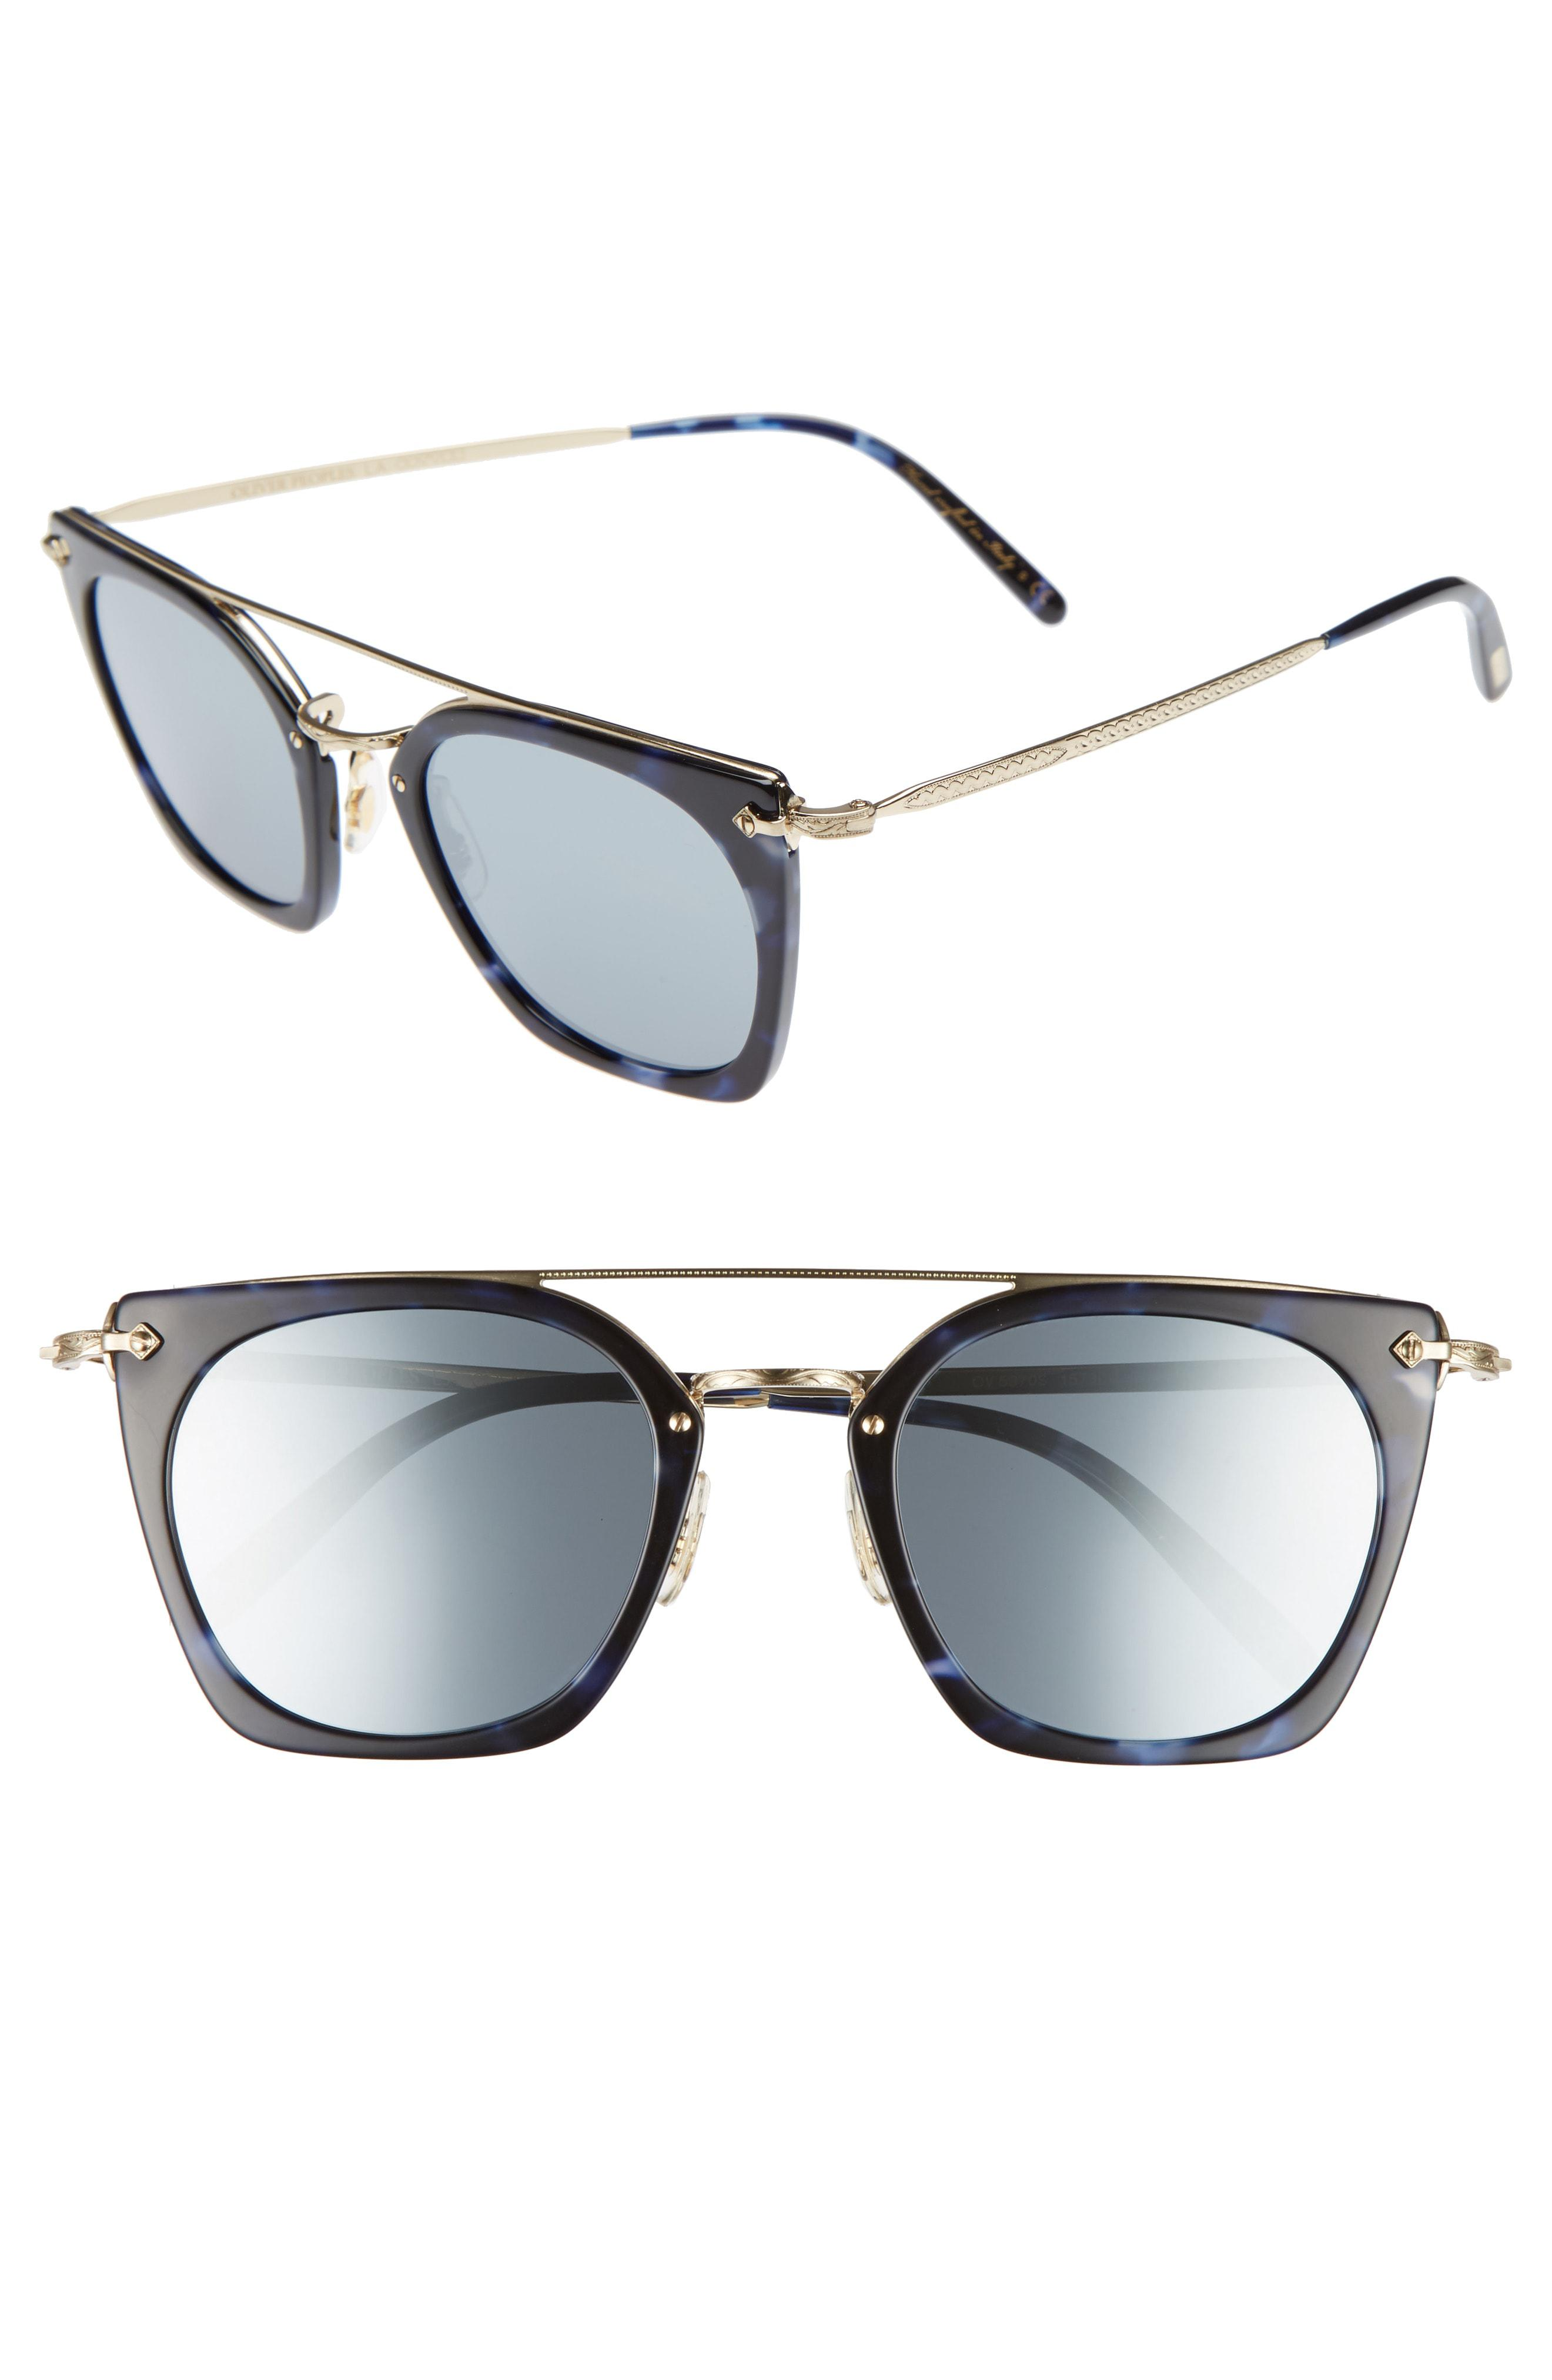 937bc70a735bd Lyst - Oliver Peoples Dacette 50mm Square Aviator Sunglasses ...